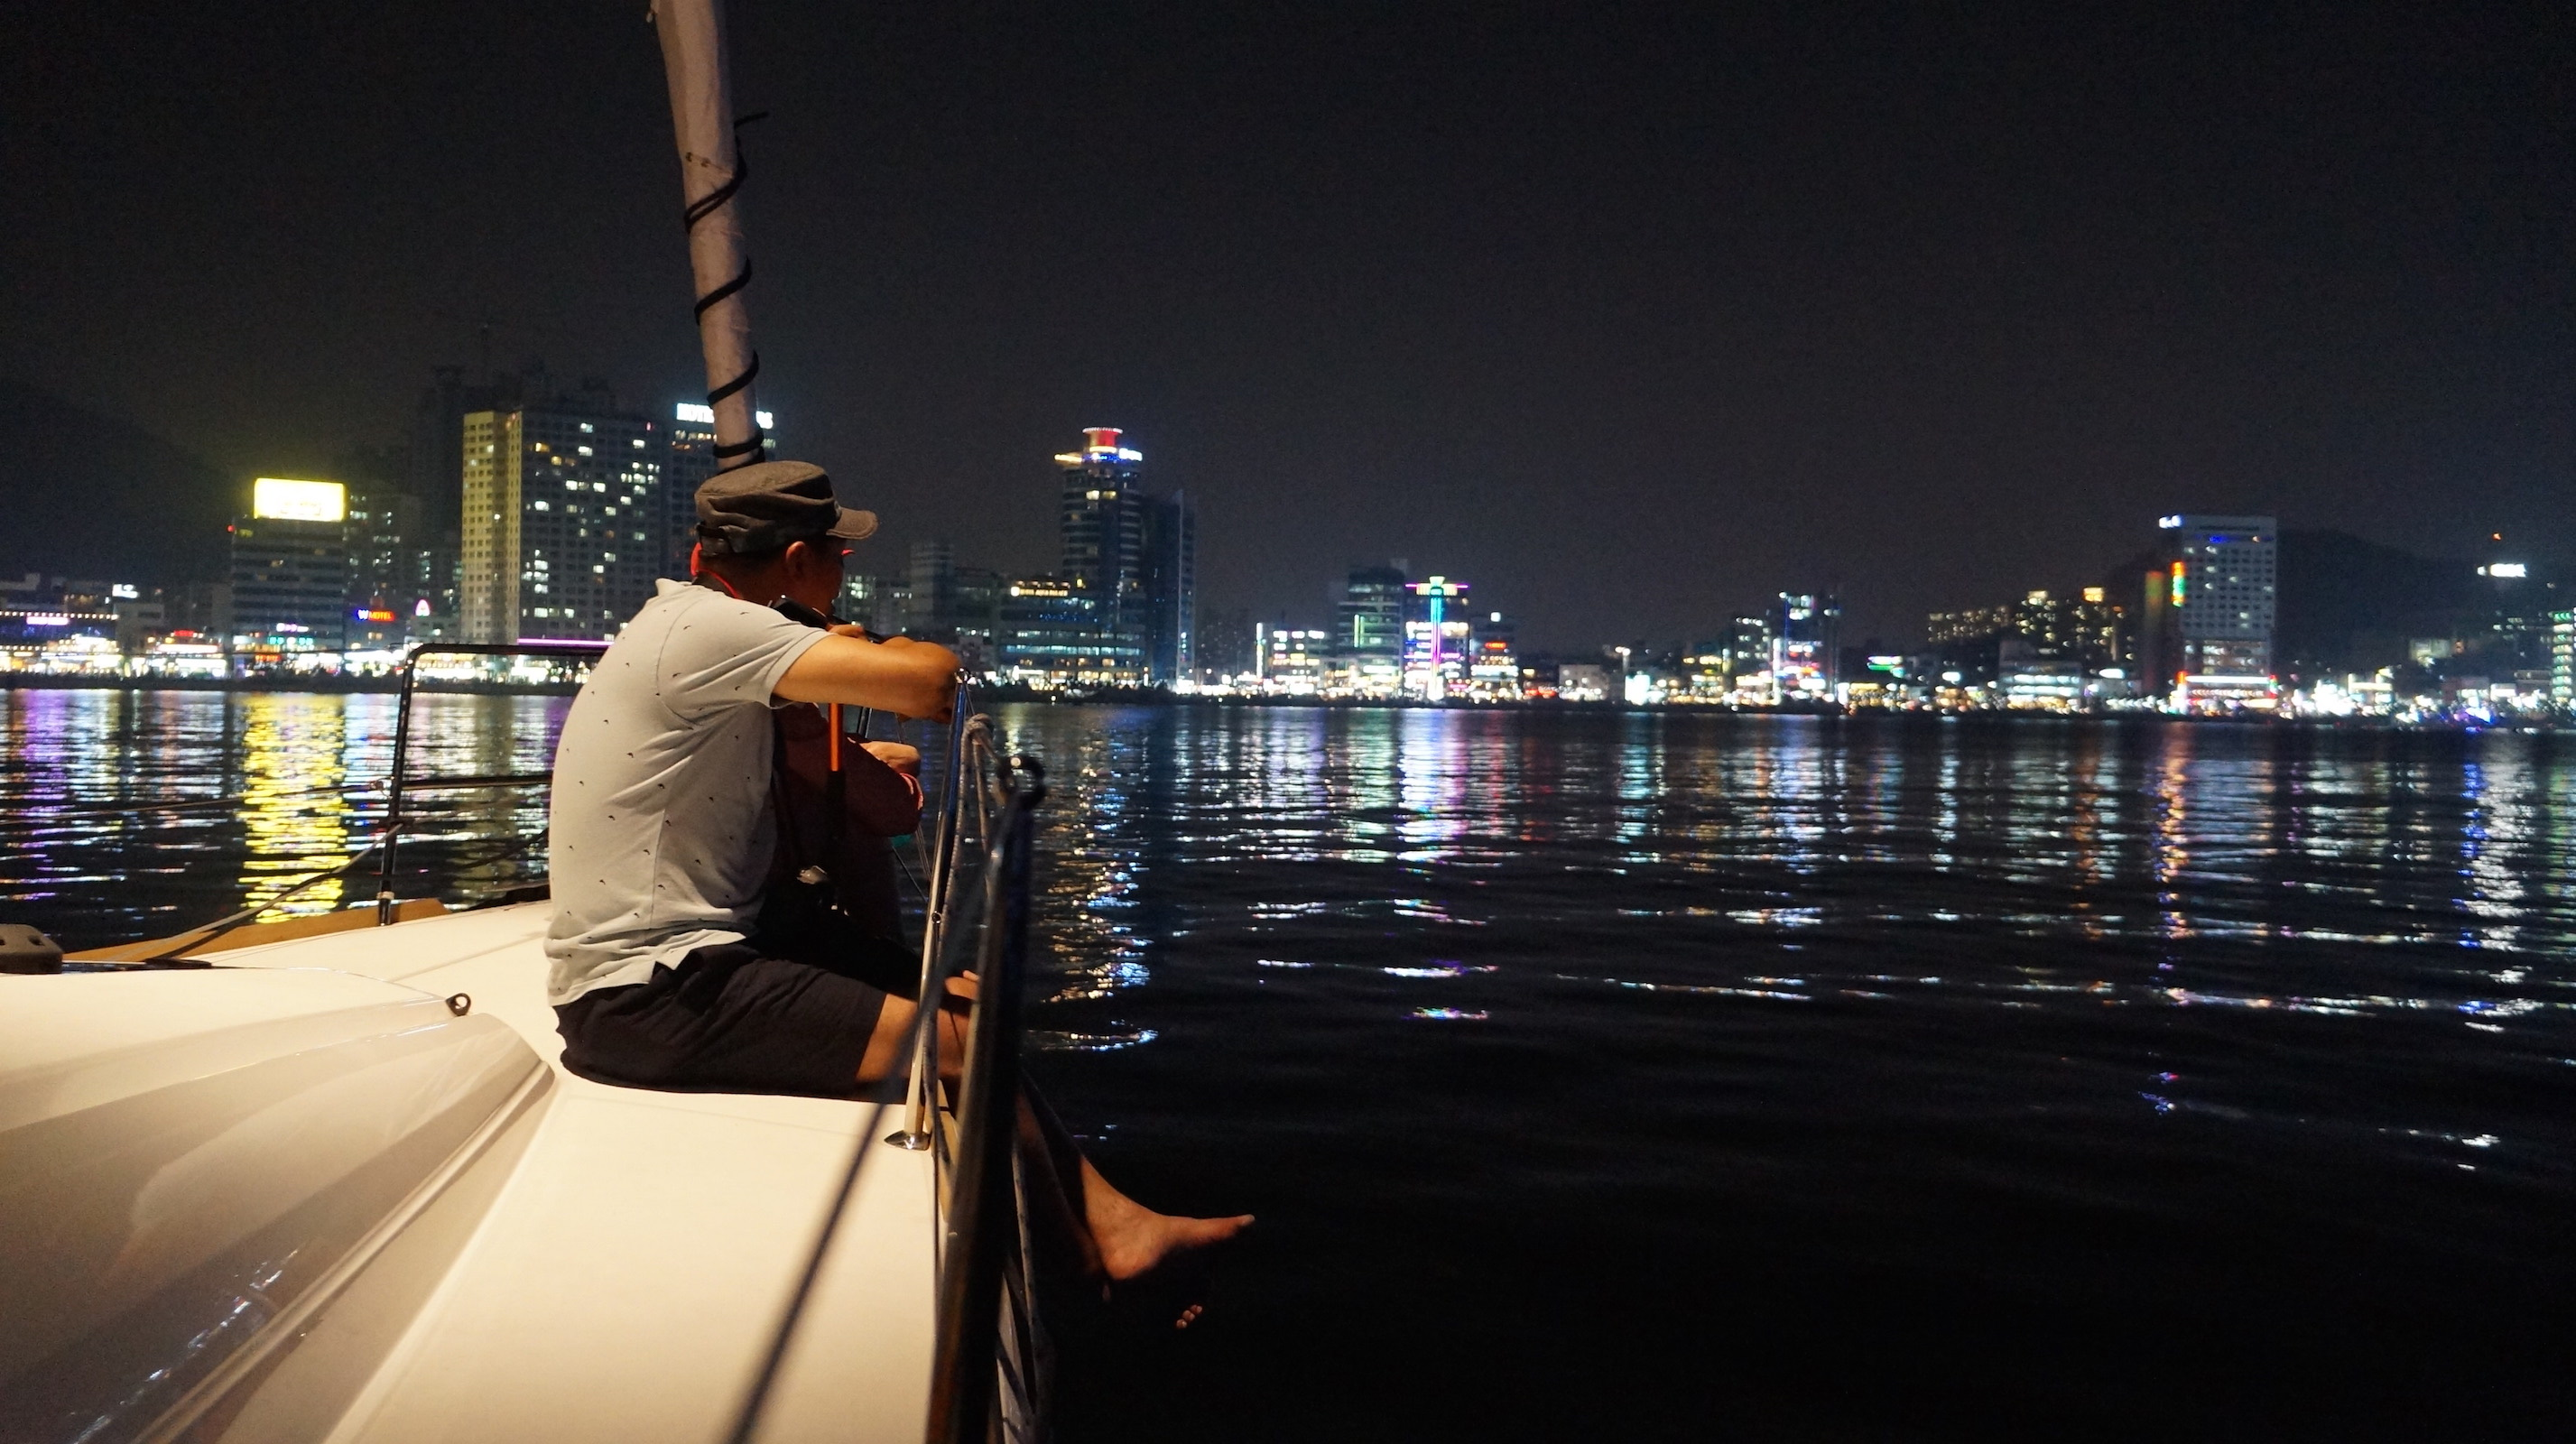 Nighttime Yacht Cruise in Busan Image